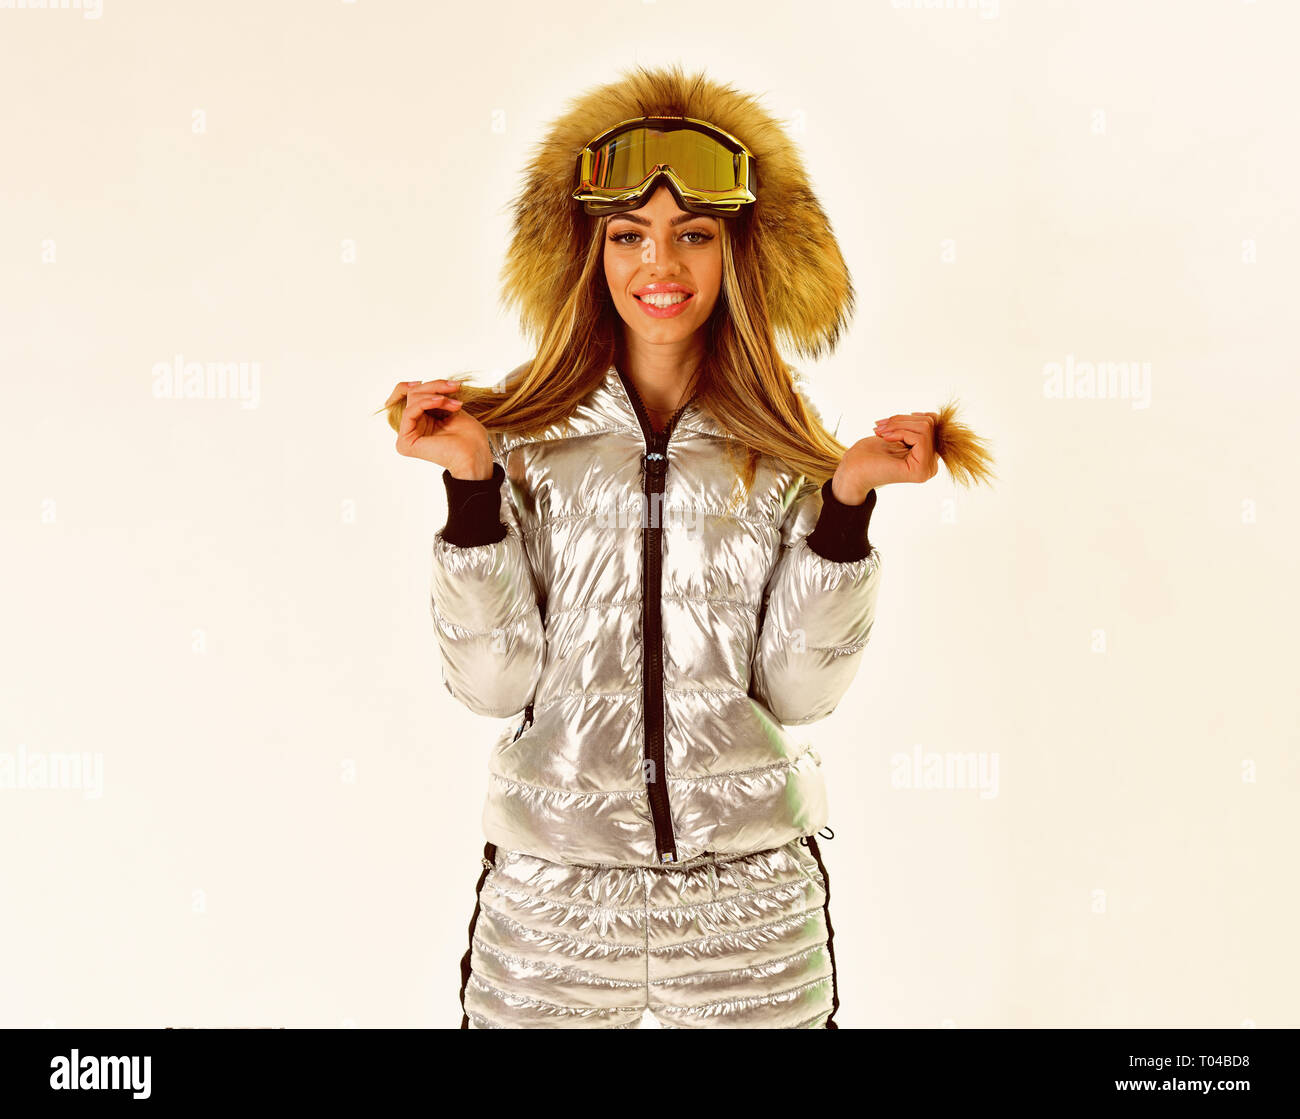 Beaming woman. It is so cold. Happy holidays. Ski resort and snowboarding. Winter sport and activity. Ski boots and glasses. Girl in ski or snowboard - Stock Image